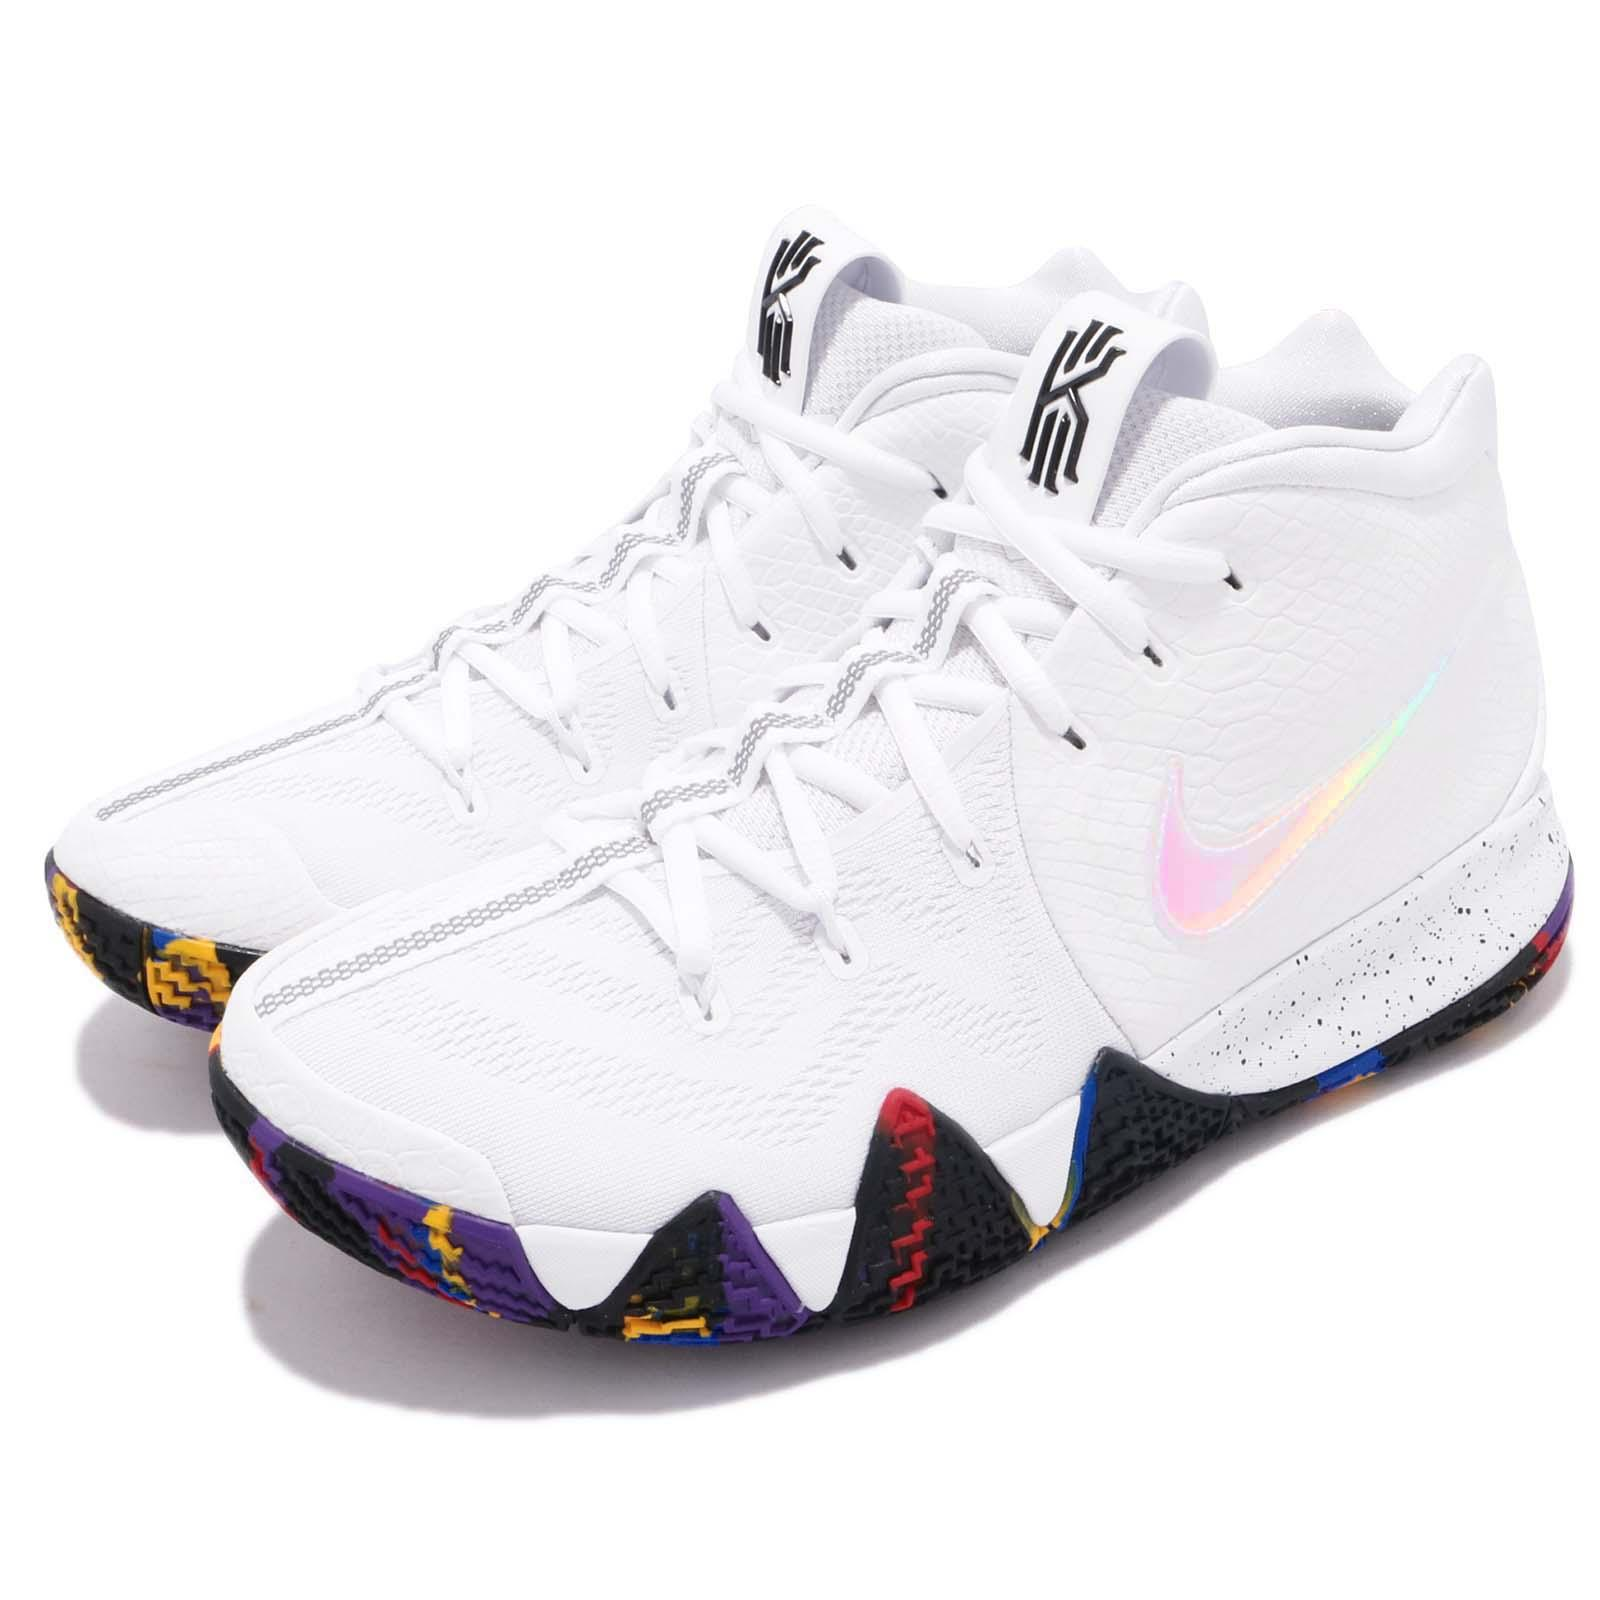 cheap for discount 2cabc 90ff5 Nike Kyrie 4 EP March Madness NCAA Irving White Mens Basketball Shoes  943807104 - tualu.org